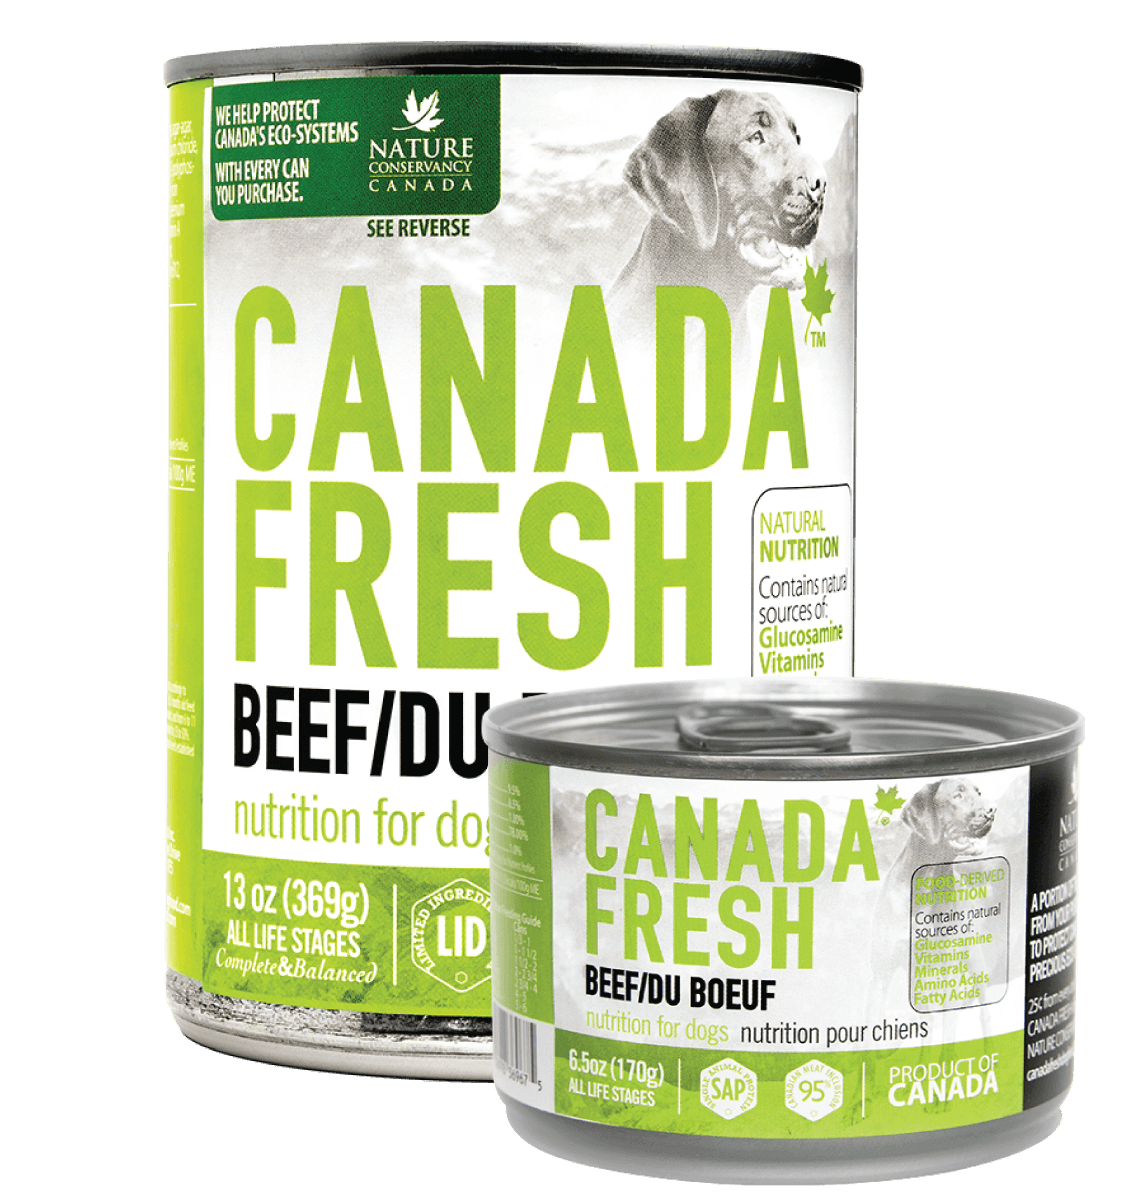 Canada Fresh Beef for dog (13 oz and 6.5 oz)